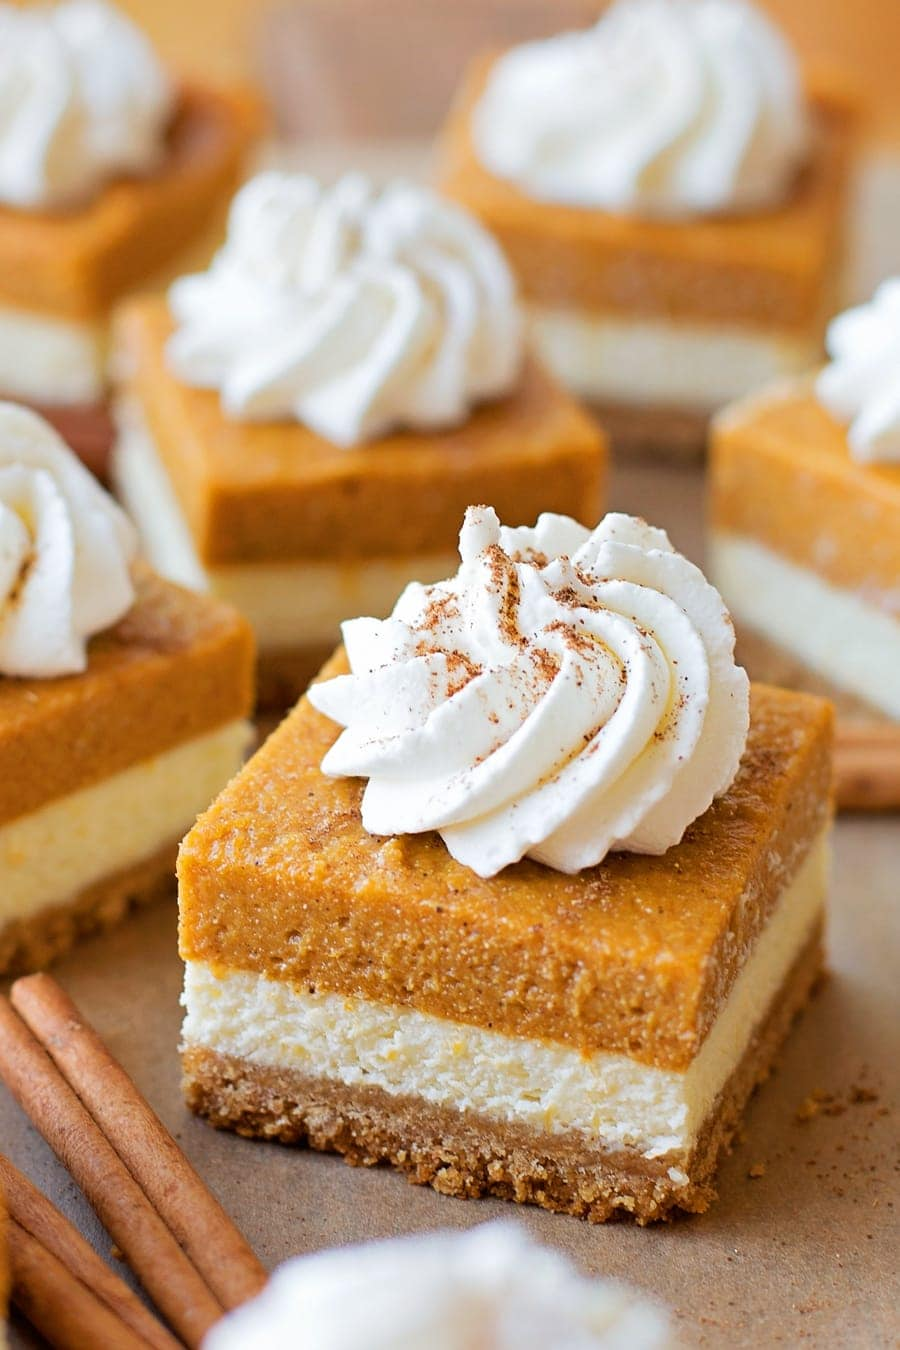 Pumpkin Pie Cheesecake Bars - layers of goodness with a graham cracker crust, cheesecake layer and pumpkin layer. This will be perfect for all fall festivities!